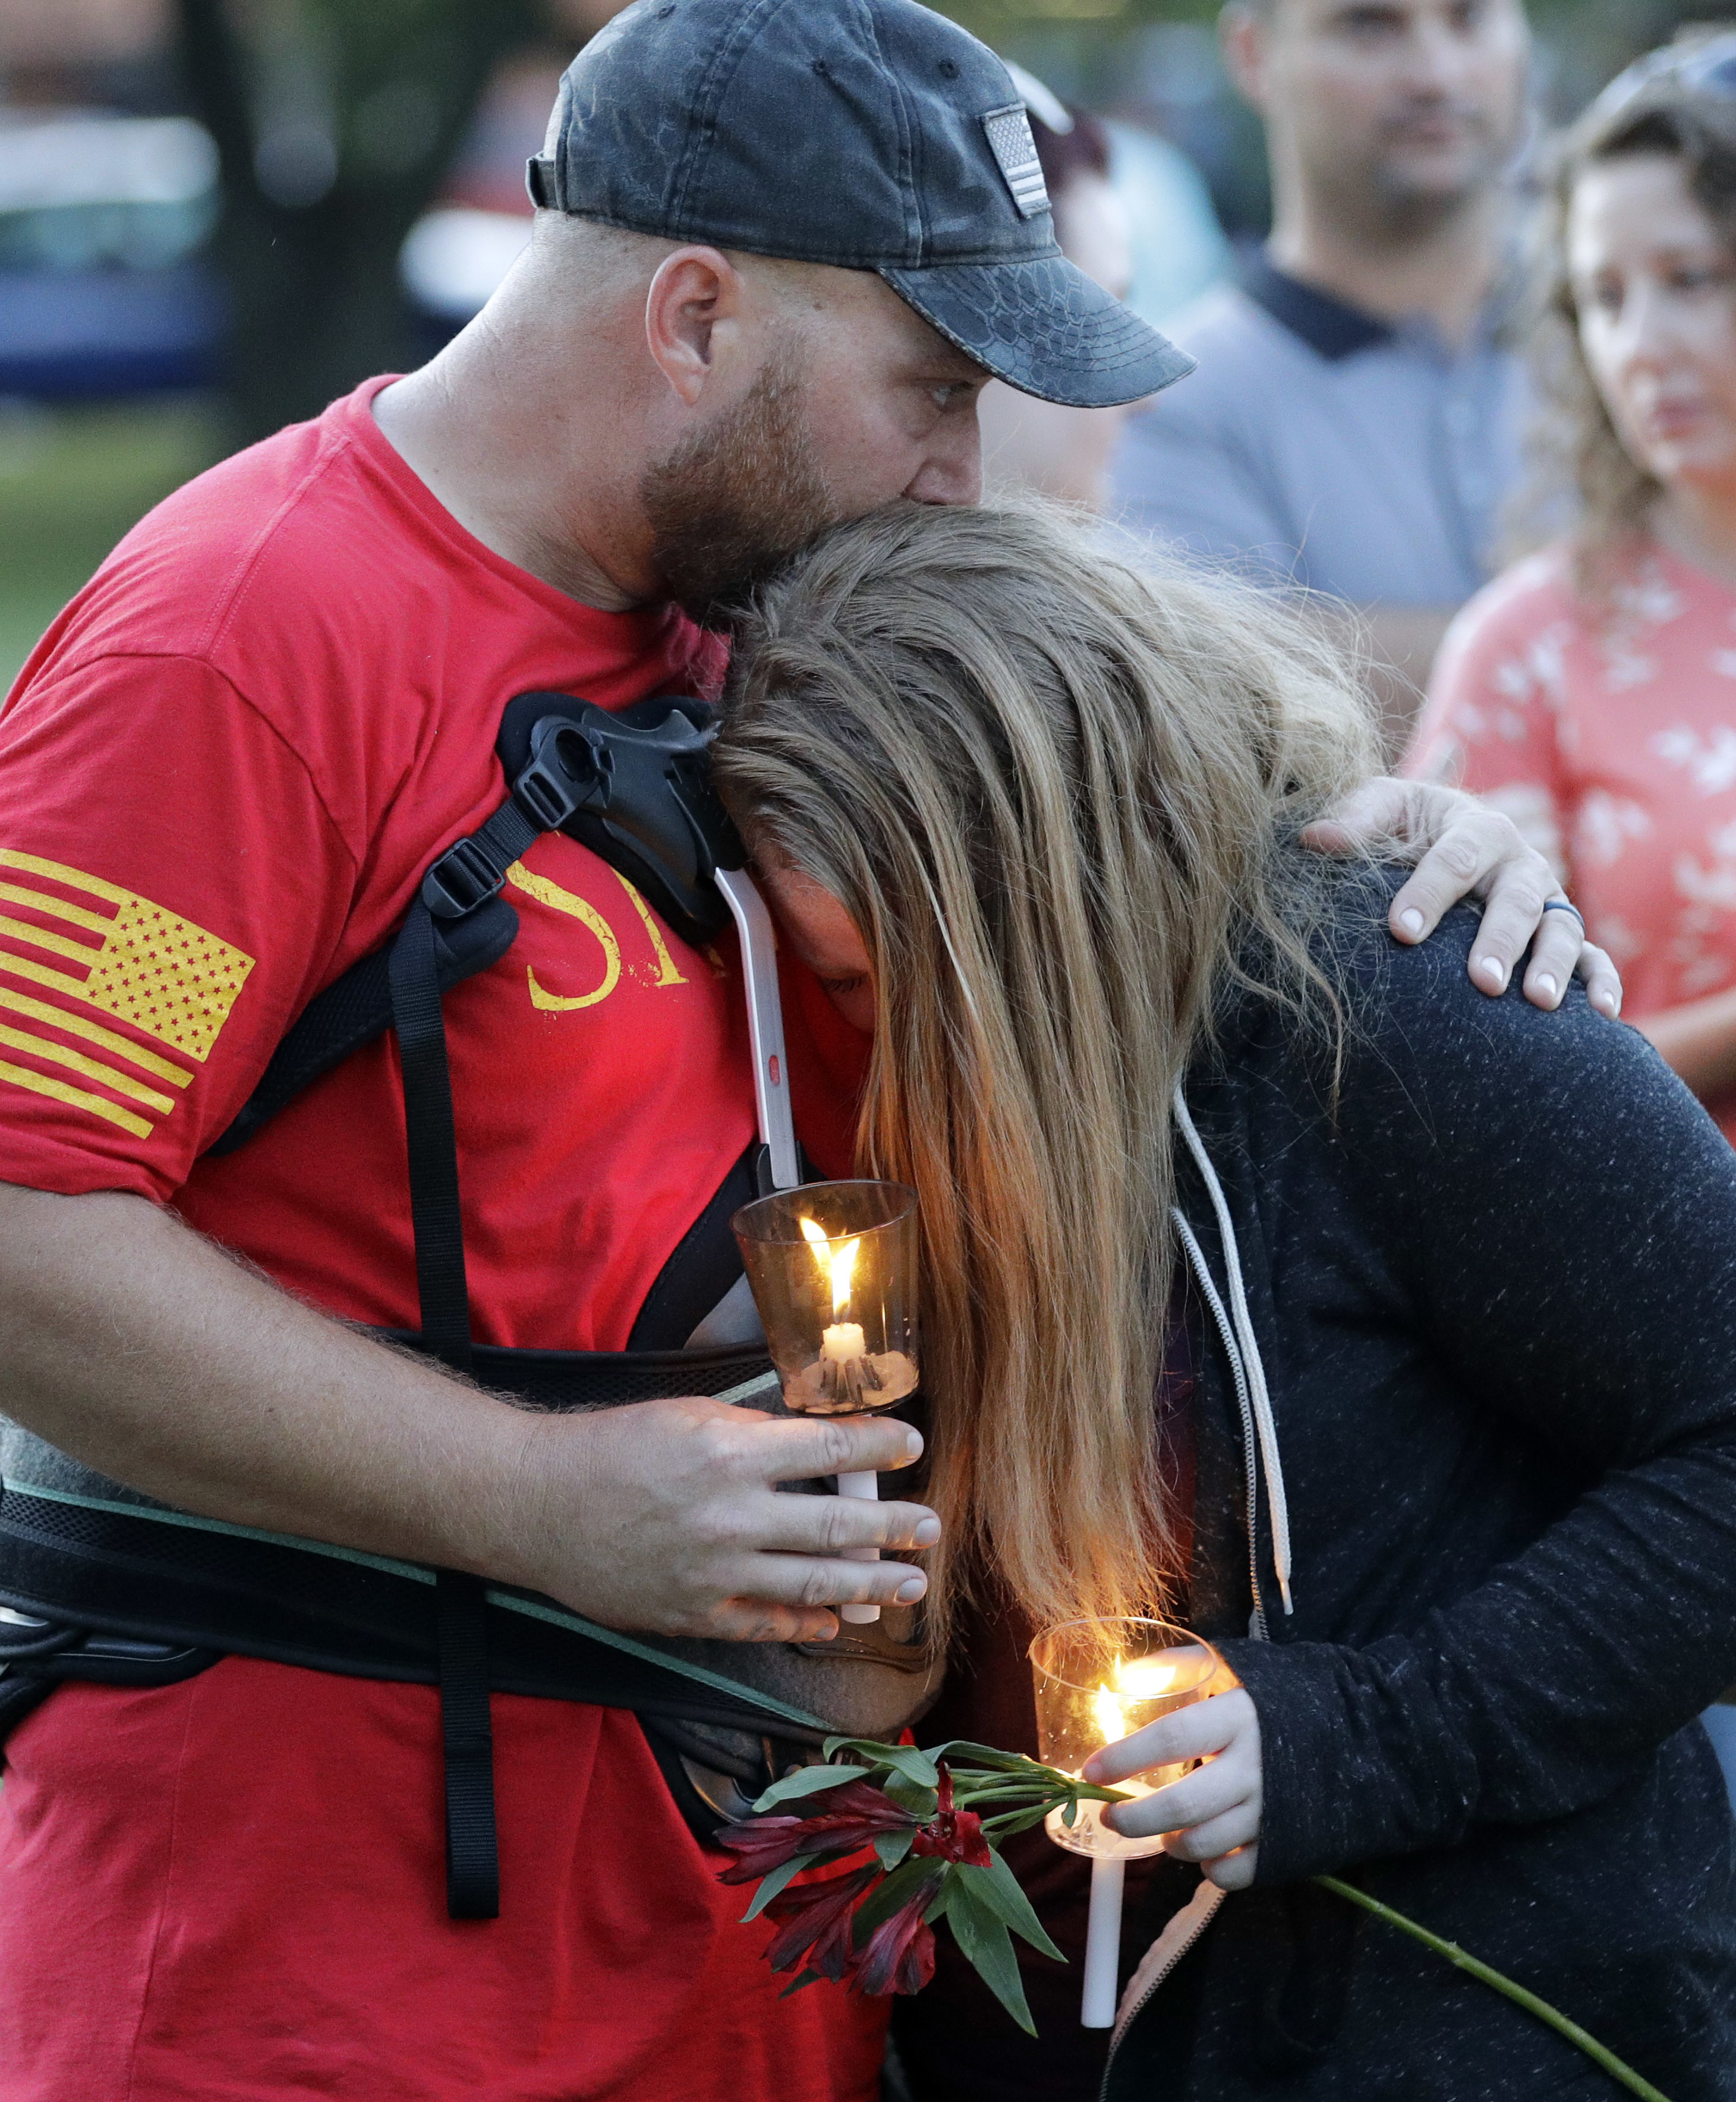 <div class='meta'><div class='origin-logo' data-origin='AP'></div><span class='caption-text' data-credit='AP'>Santa Fe High School freshman Kylie Trochesset, right, is comforted by her father, Jared, during a prayer vigil. (AP Photo/David J. Phillip)</span></div>